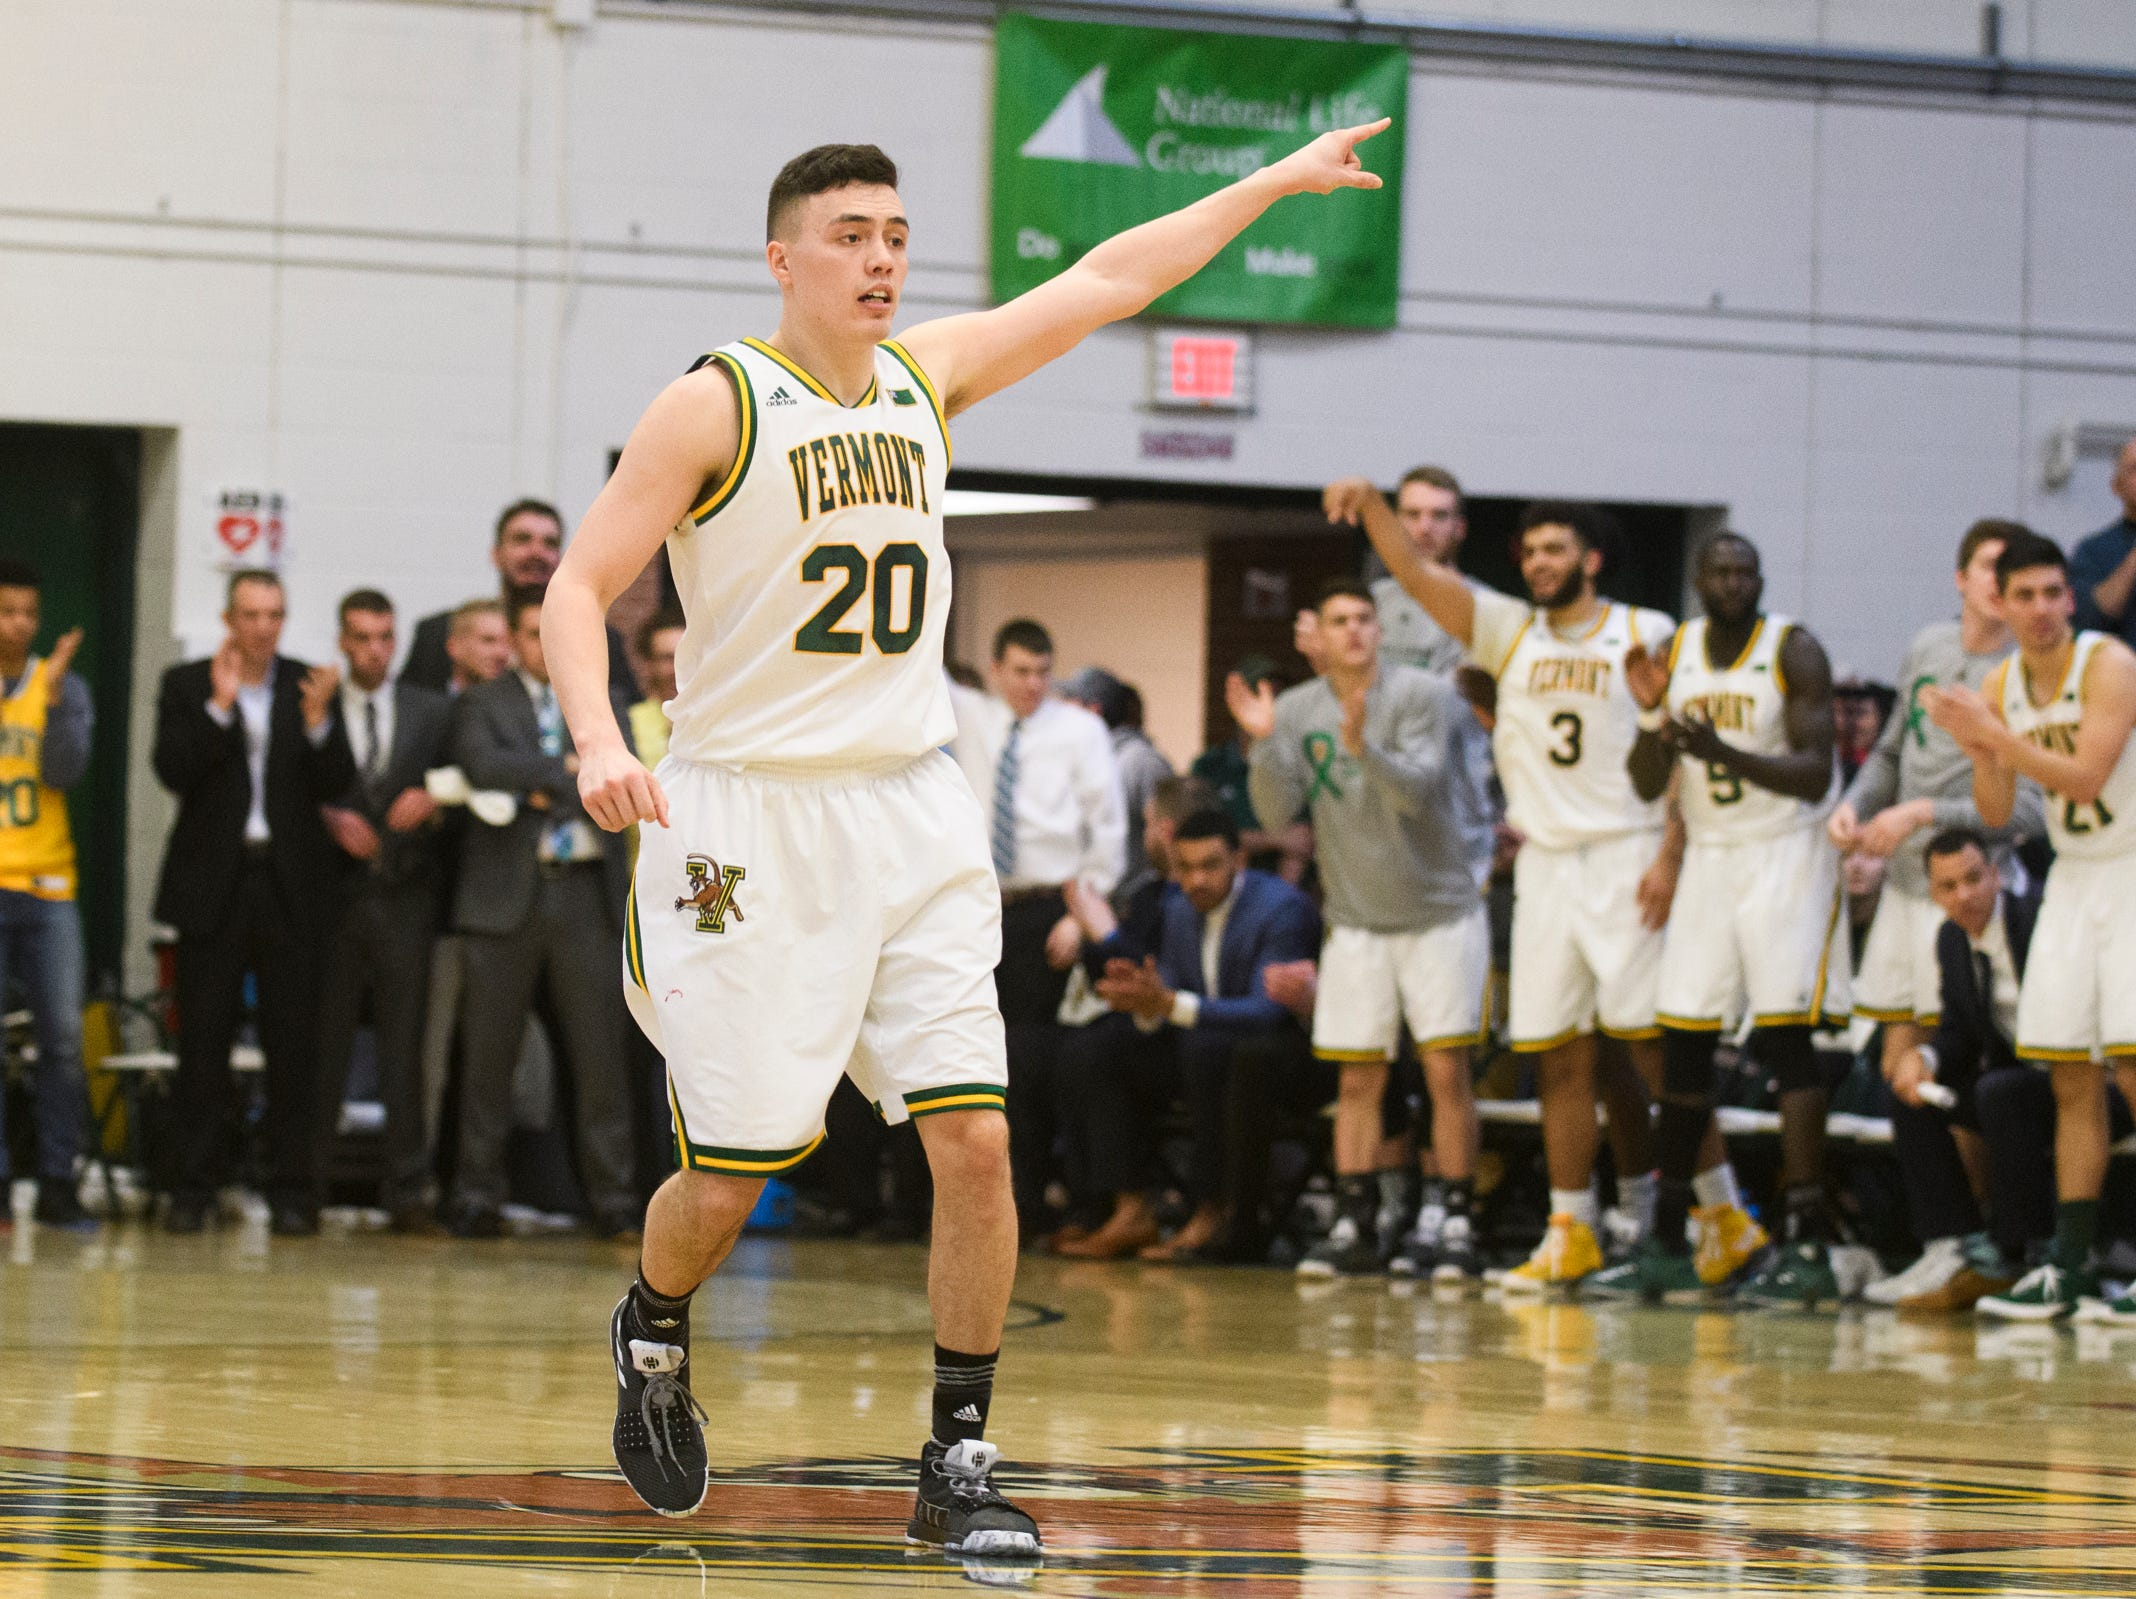 Vermont guard Ernie Duncan (20) points to a player during the men's basketball game between the Stony Brook Seawolves and the Vermont Catamounts at Patrick Gym on Saturday night March 2, 2019 in Burlington, Vermont.